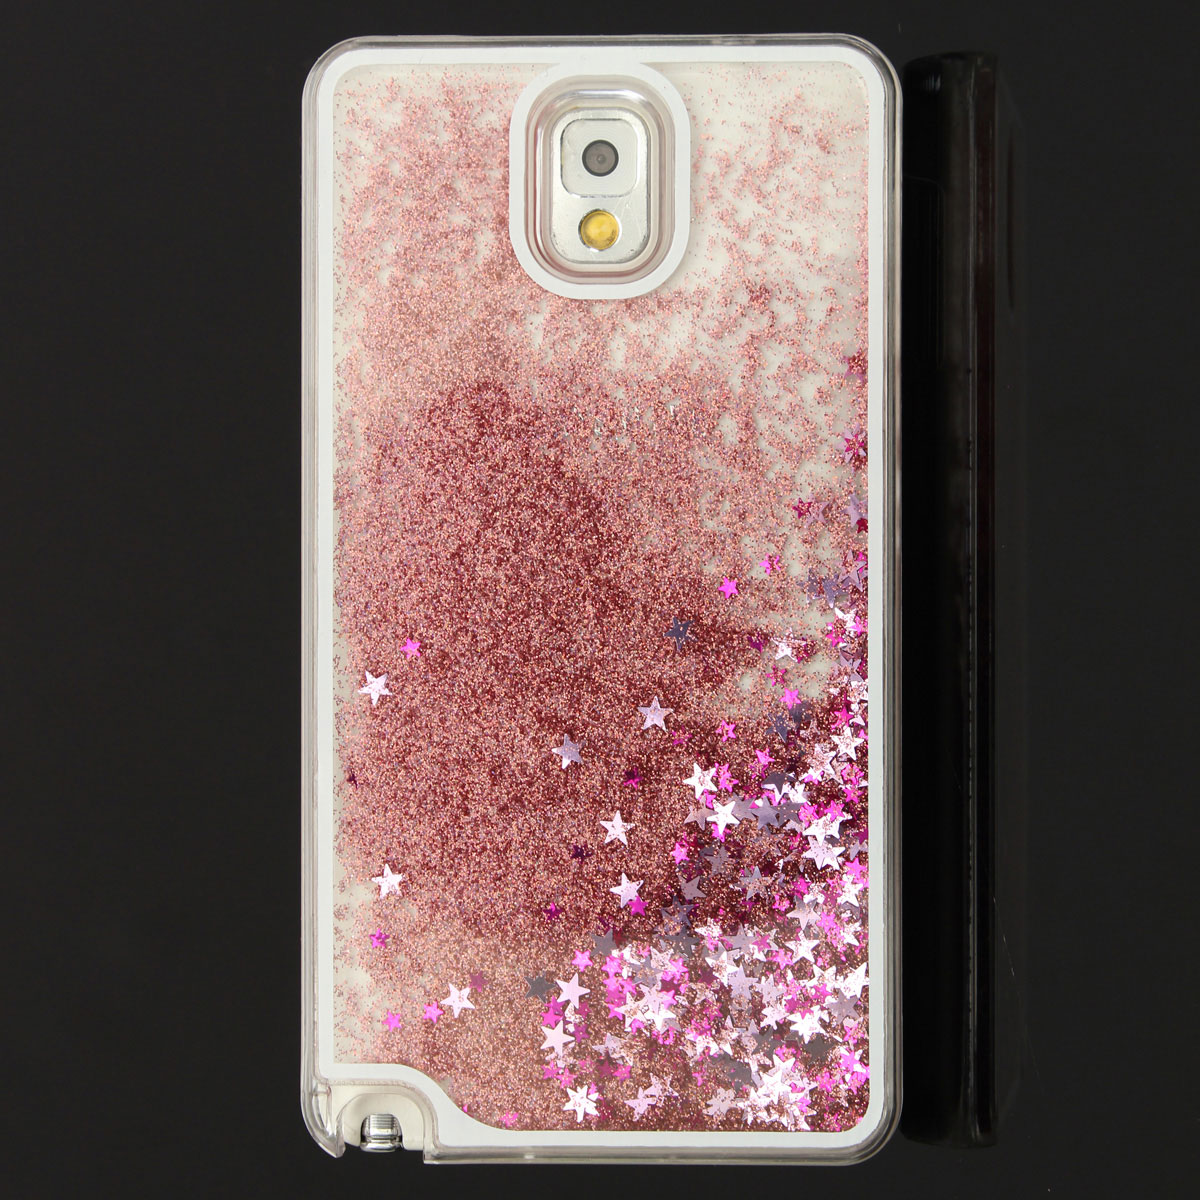 Aliexpress 2016 New Luxury Bling Crystal Gold Angel Rhinestone Handmade Mobile Phone Cases Covers For Samsung Galaxy S4 Siiii Siv I9500 From